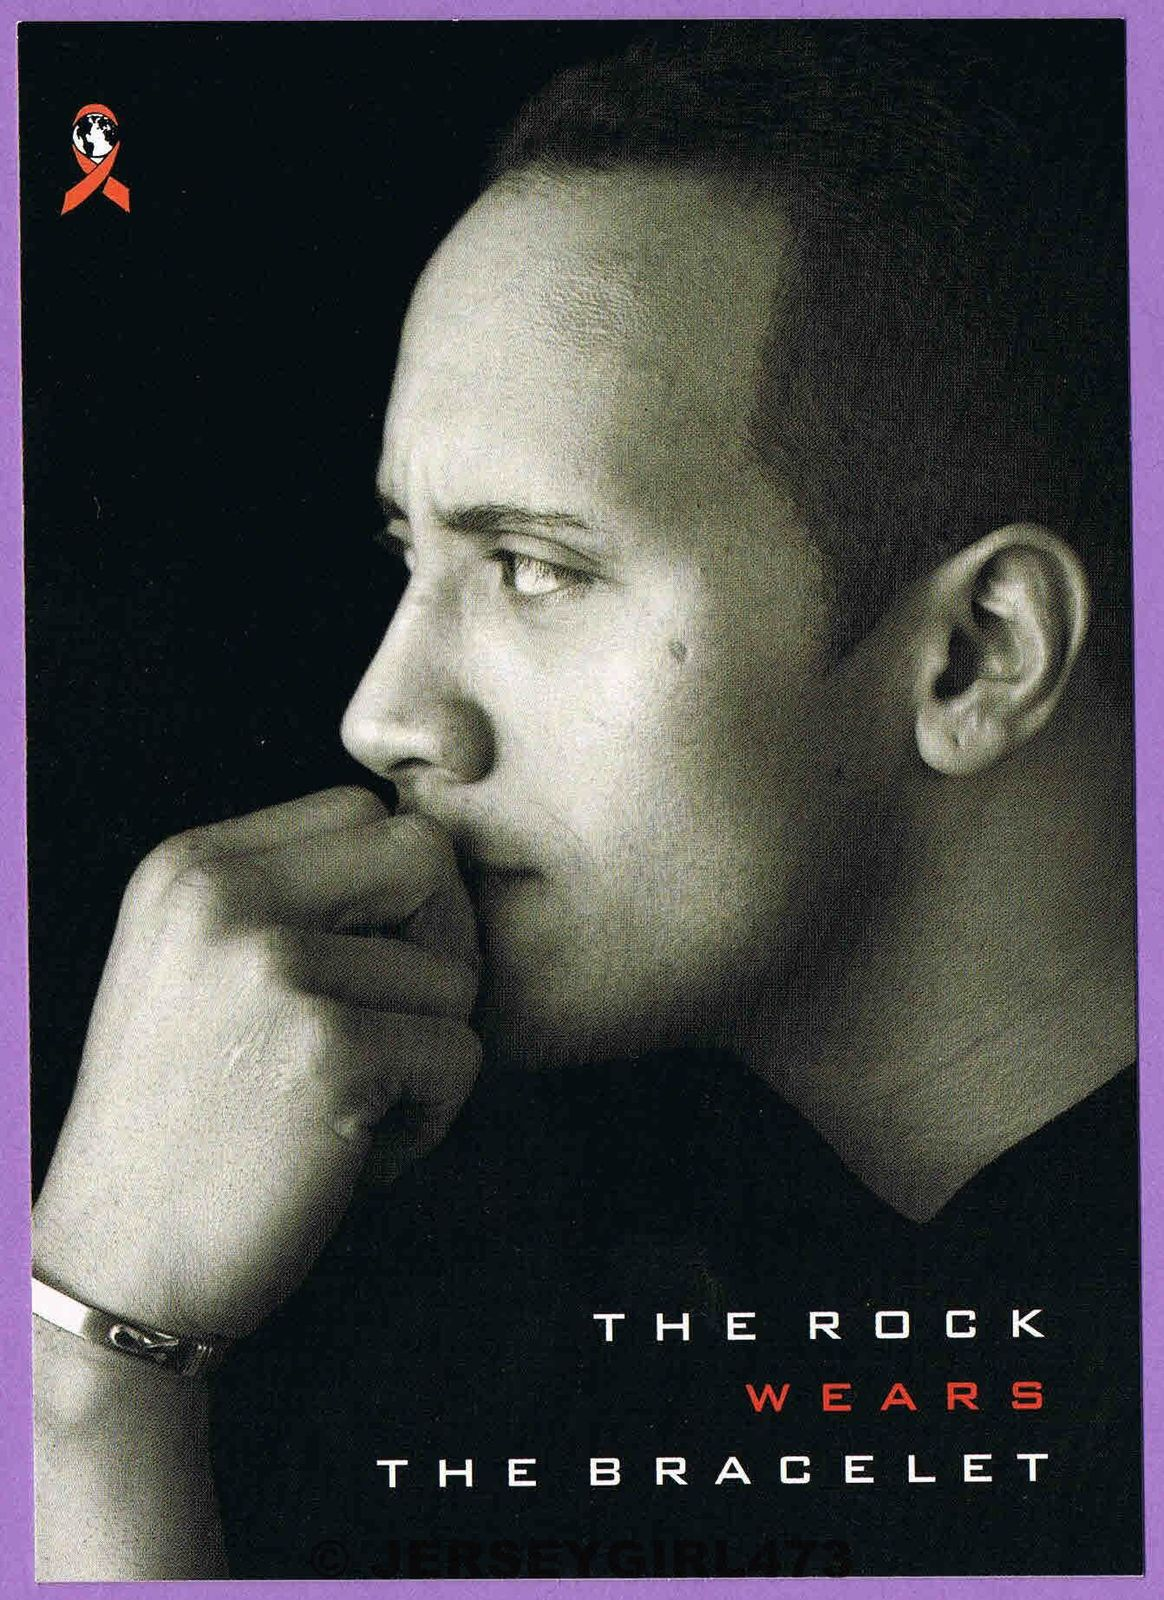 The rock pc   front